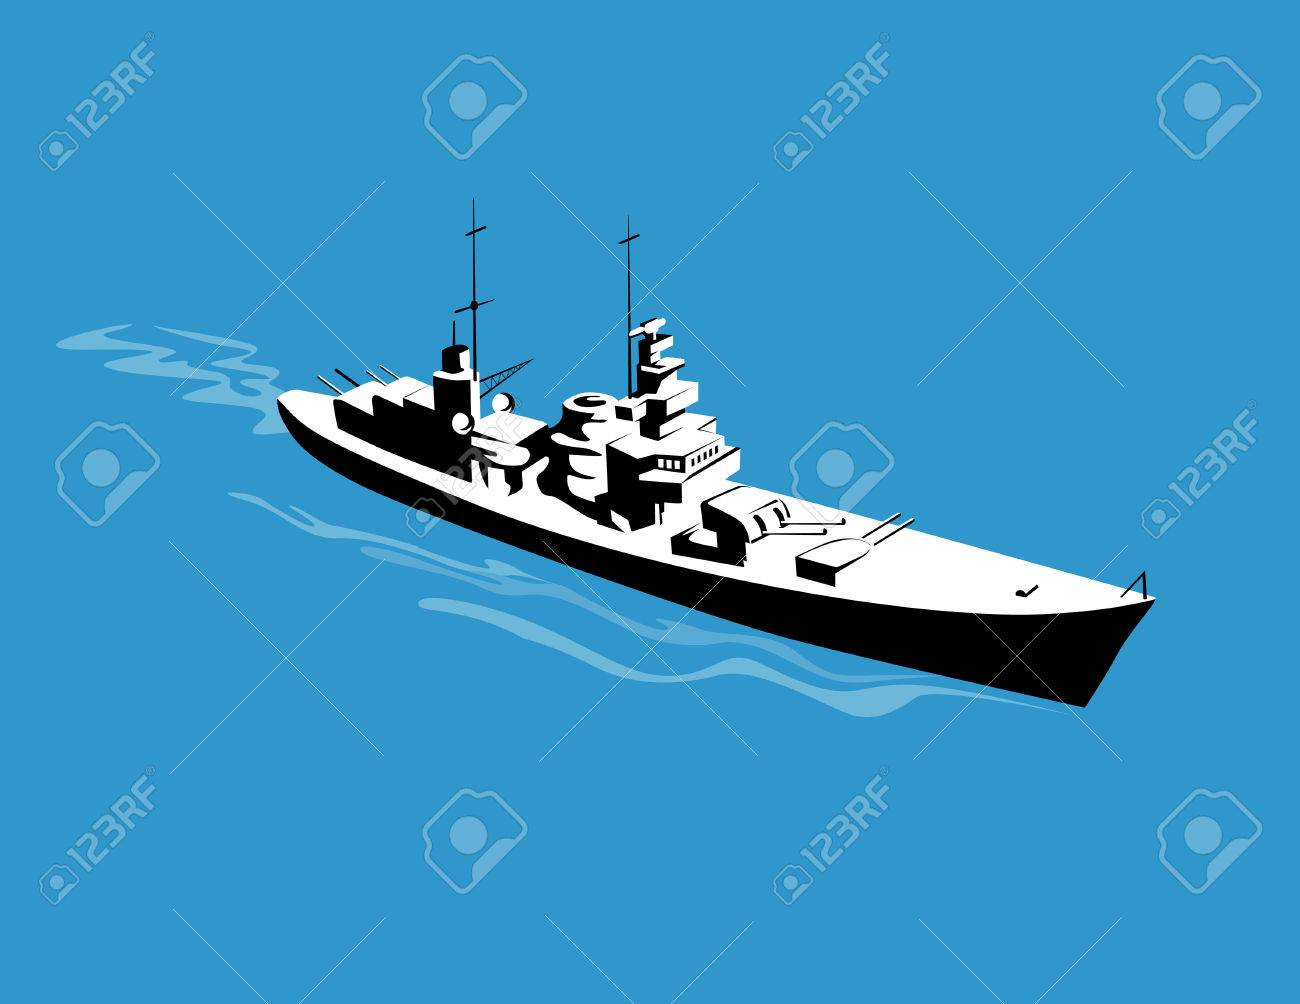 Warship steaming past as viewed from above - 2323401